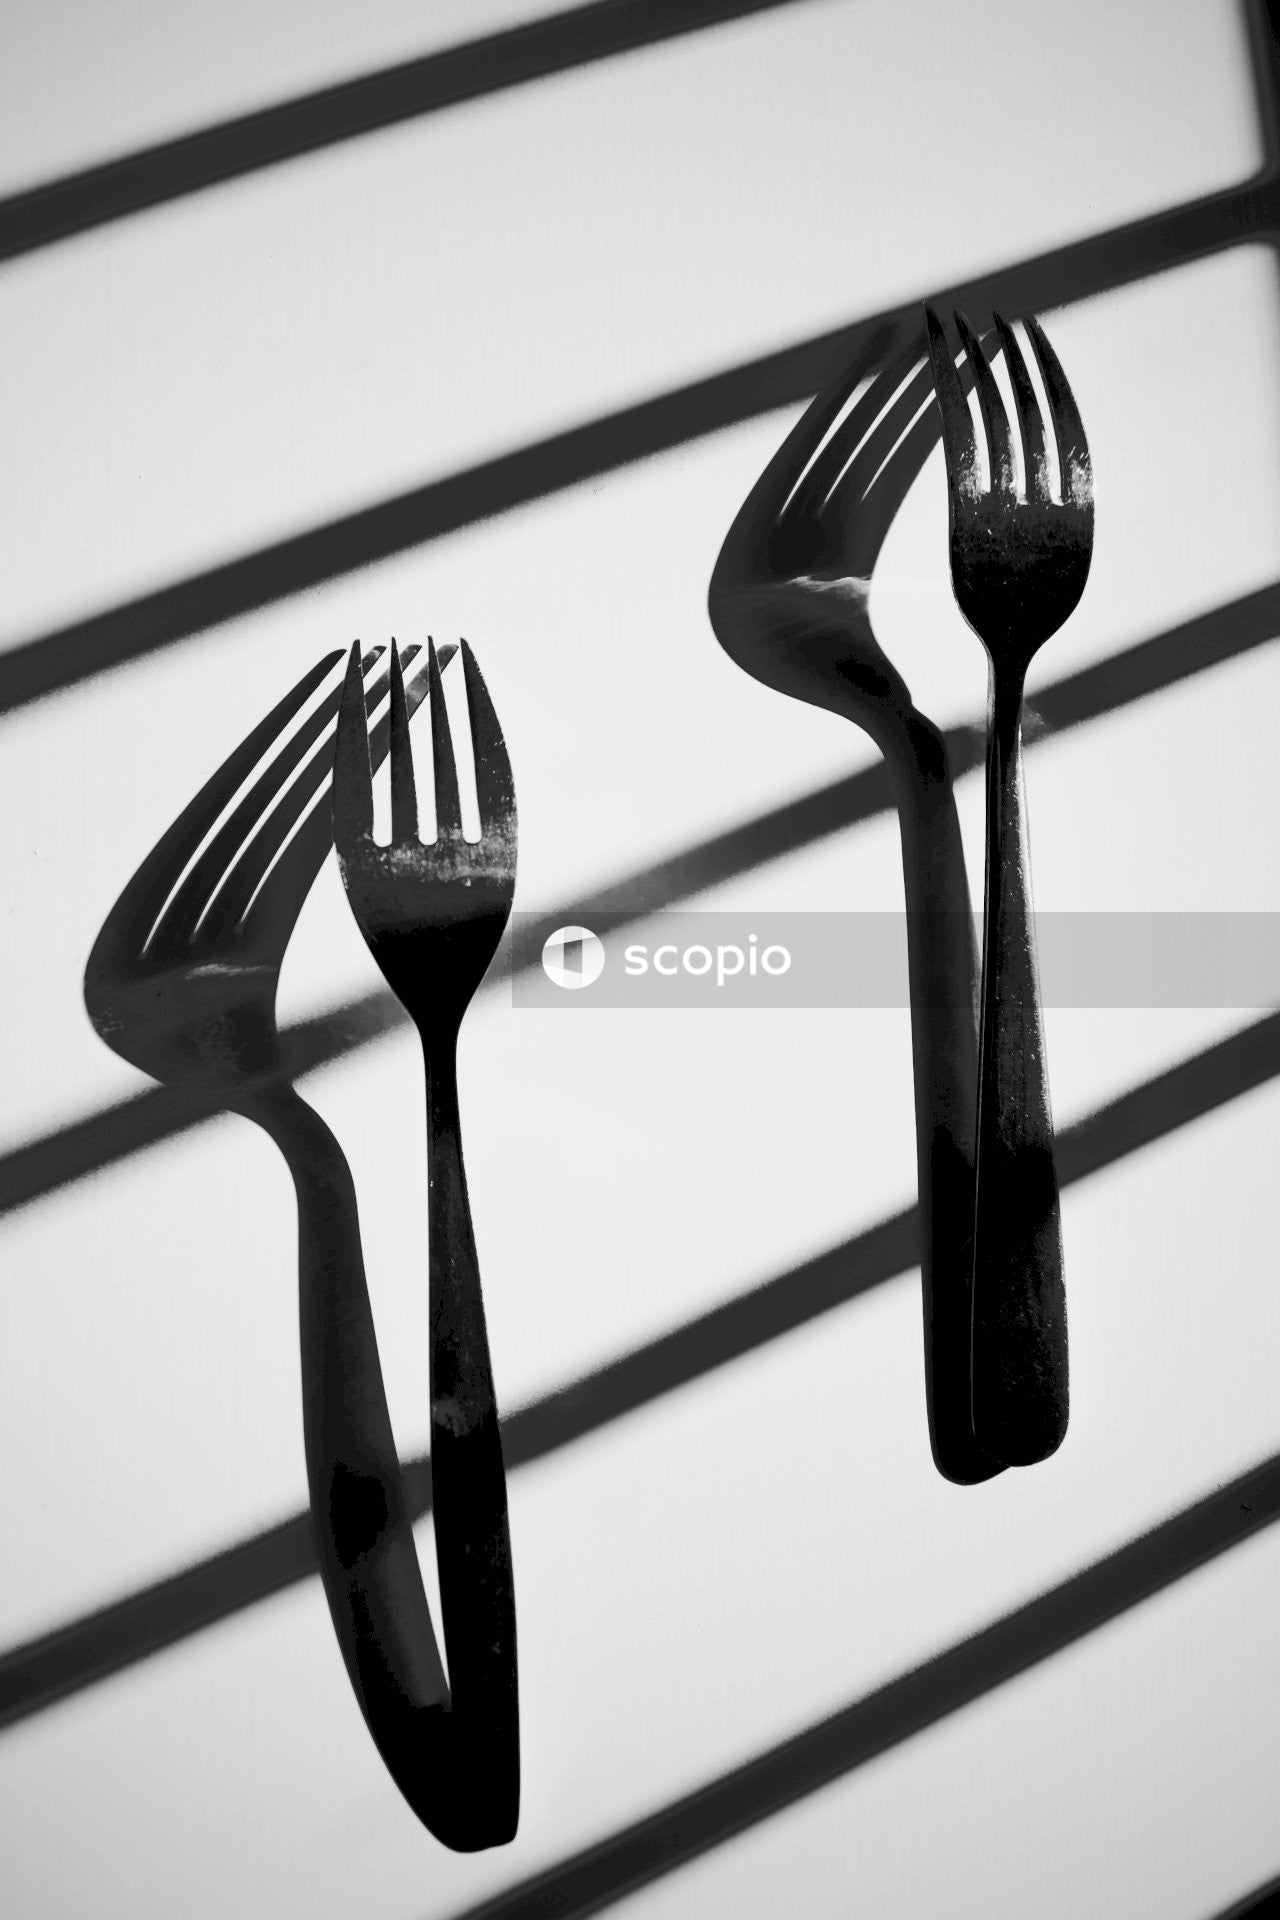 Stainless steel fork and spoon